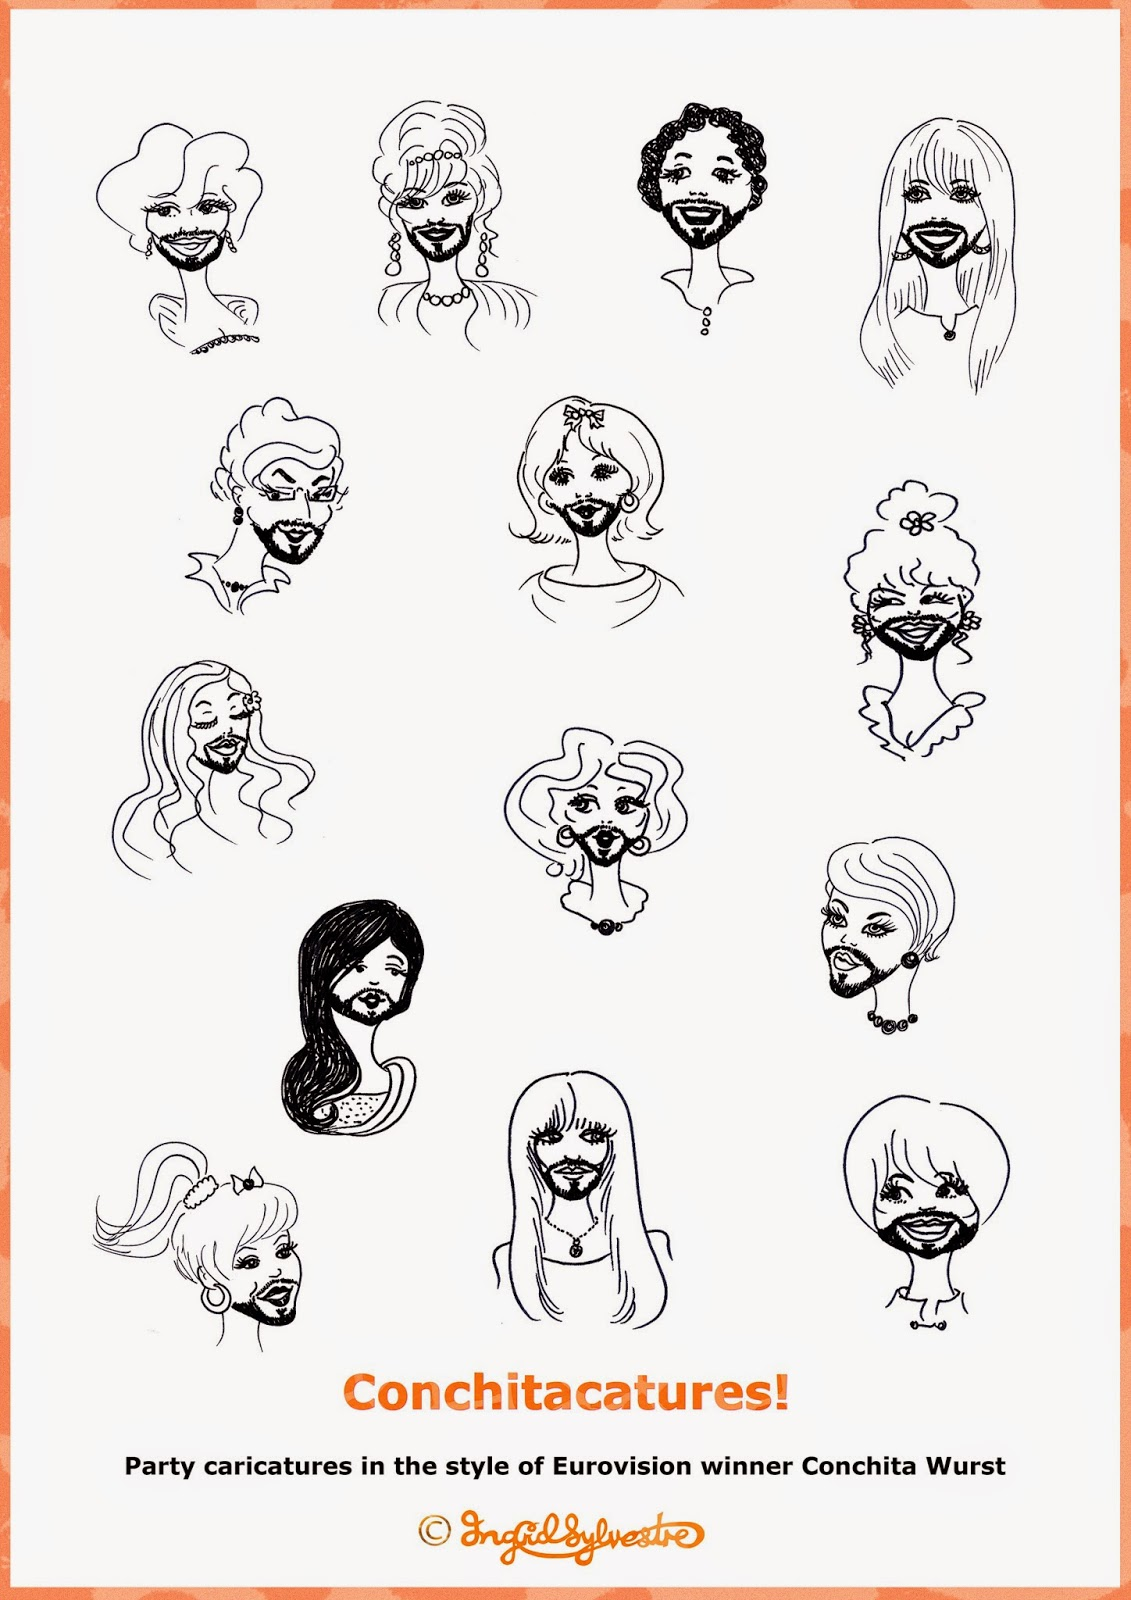 Conchitacatures! 'On-the-spot' party caricatures by UK artist Ingrid Sylvestre celebrating Eurovision winner Conchita Wurst